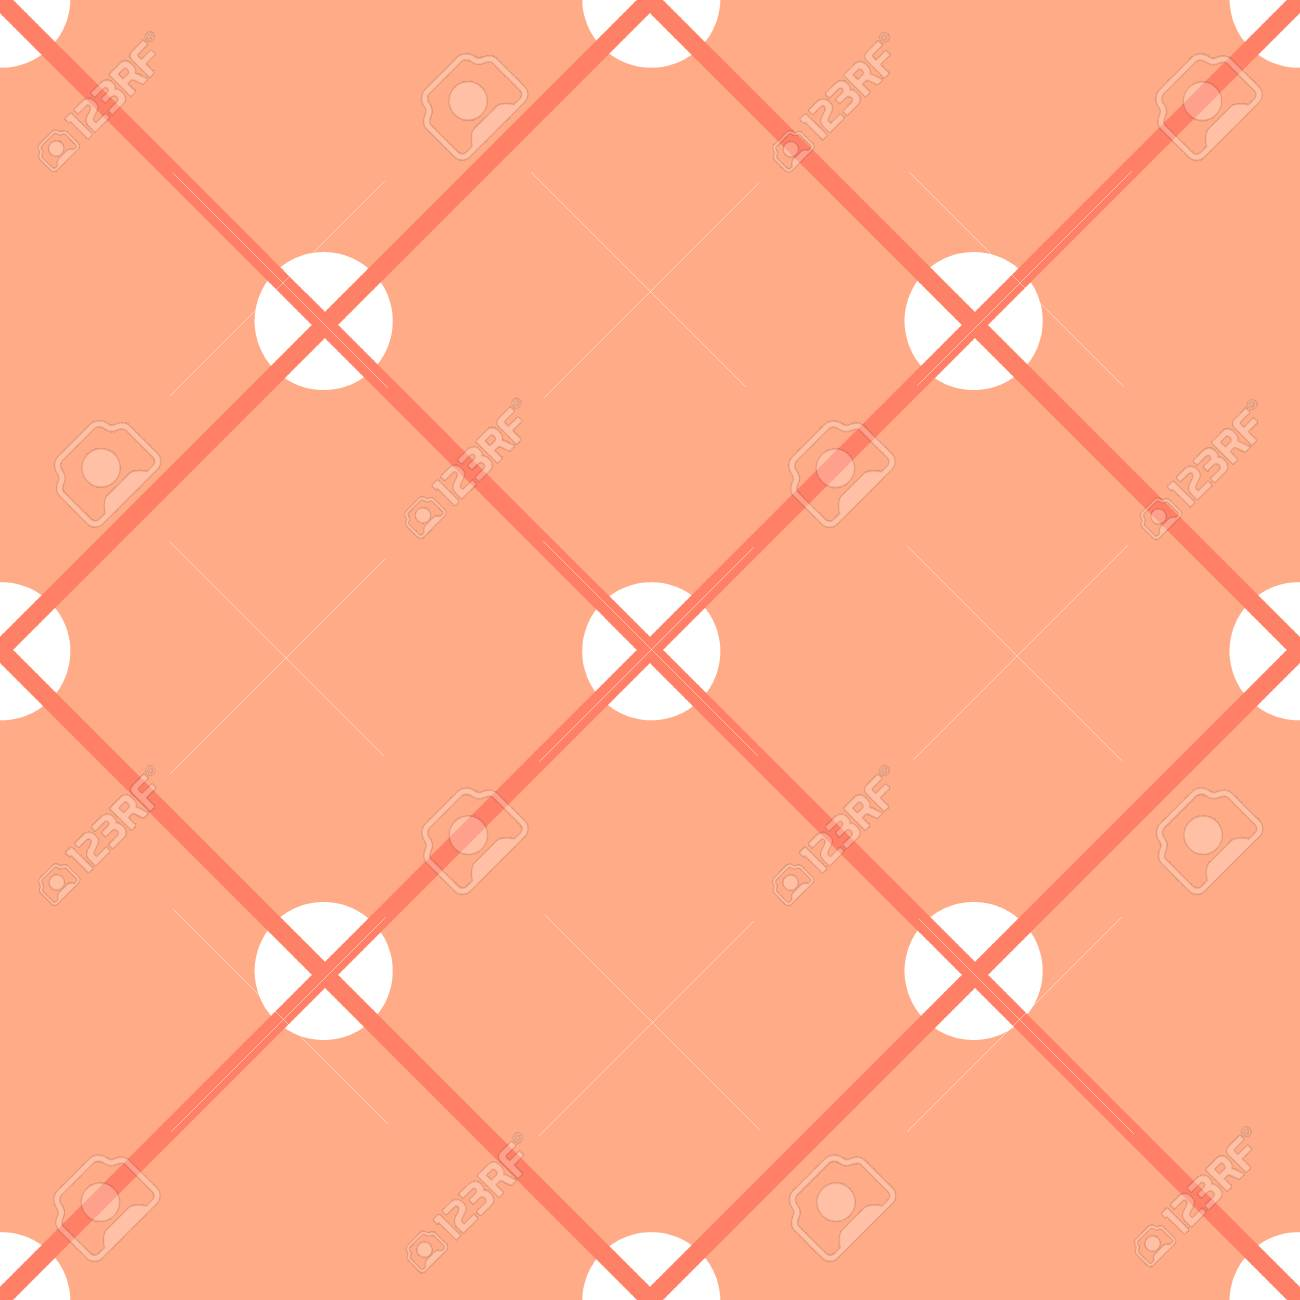 Wallpapers with white circles and stripes - 79735066